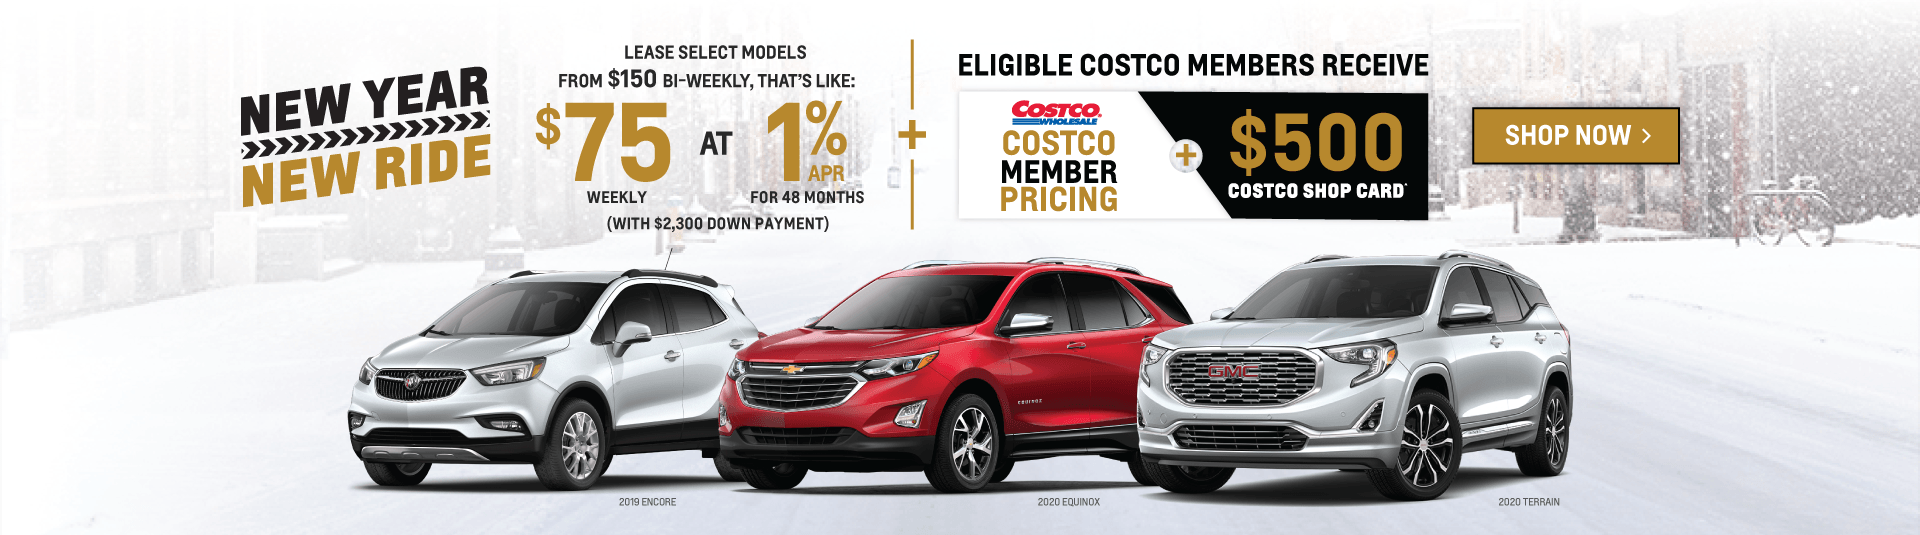 Chevrolet, Buick, GMC SUV New Year, New Ride Sale Event in Toronto